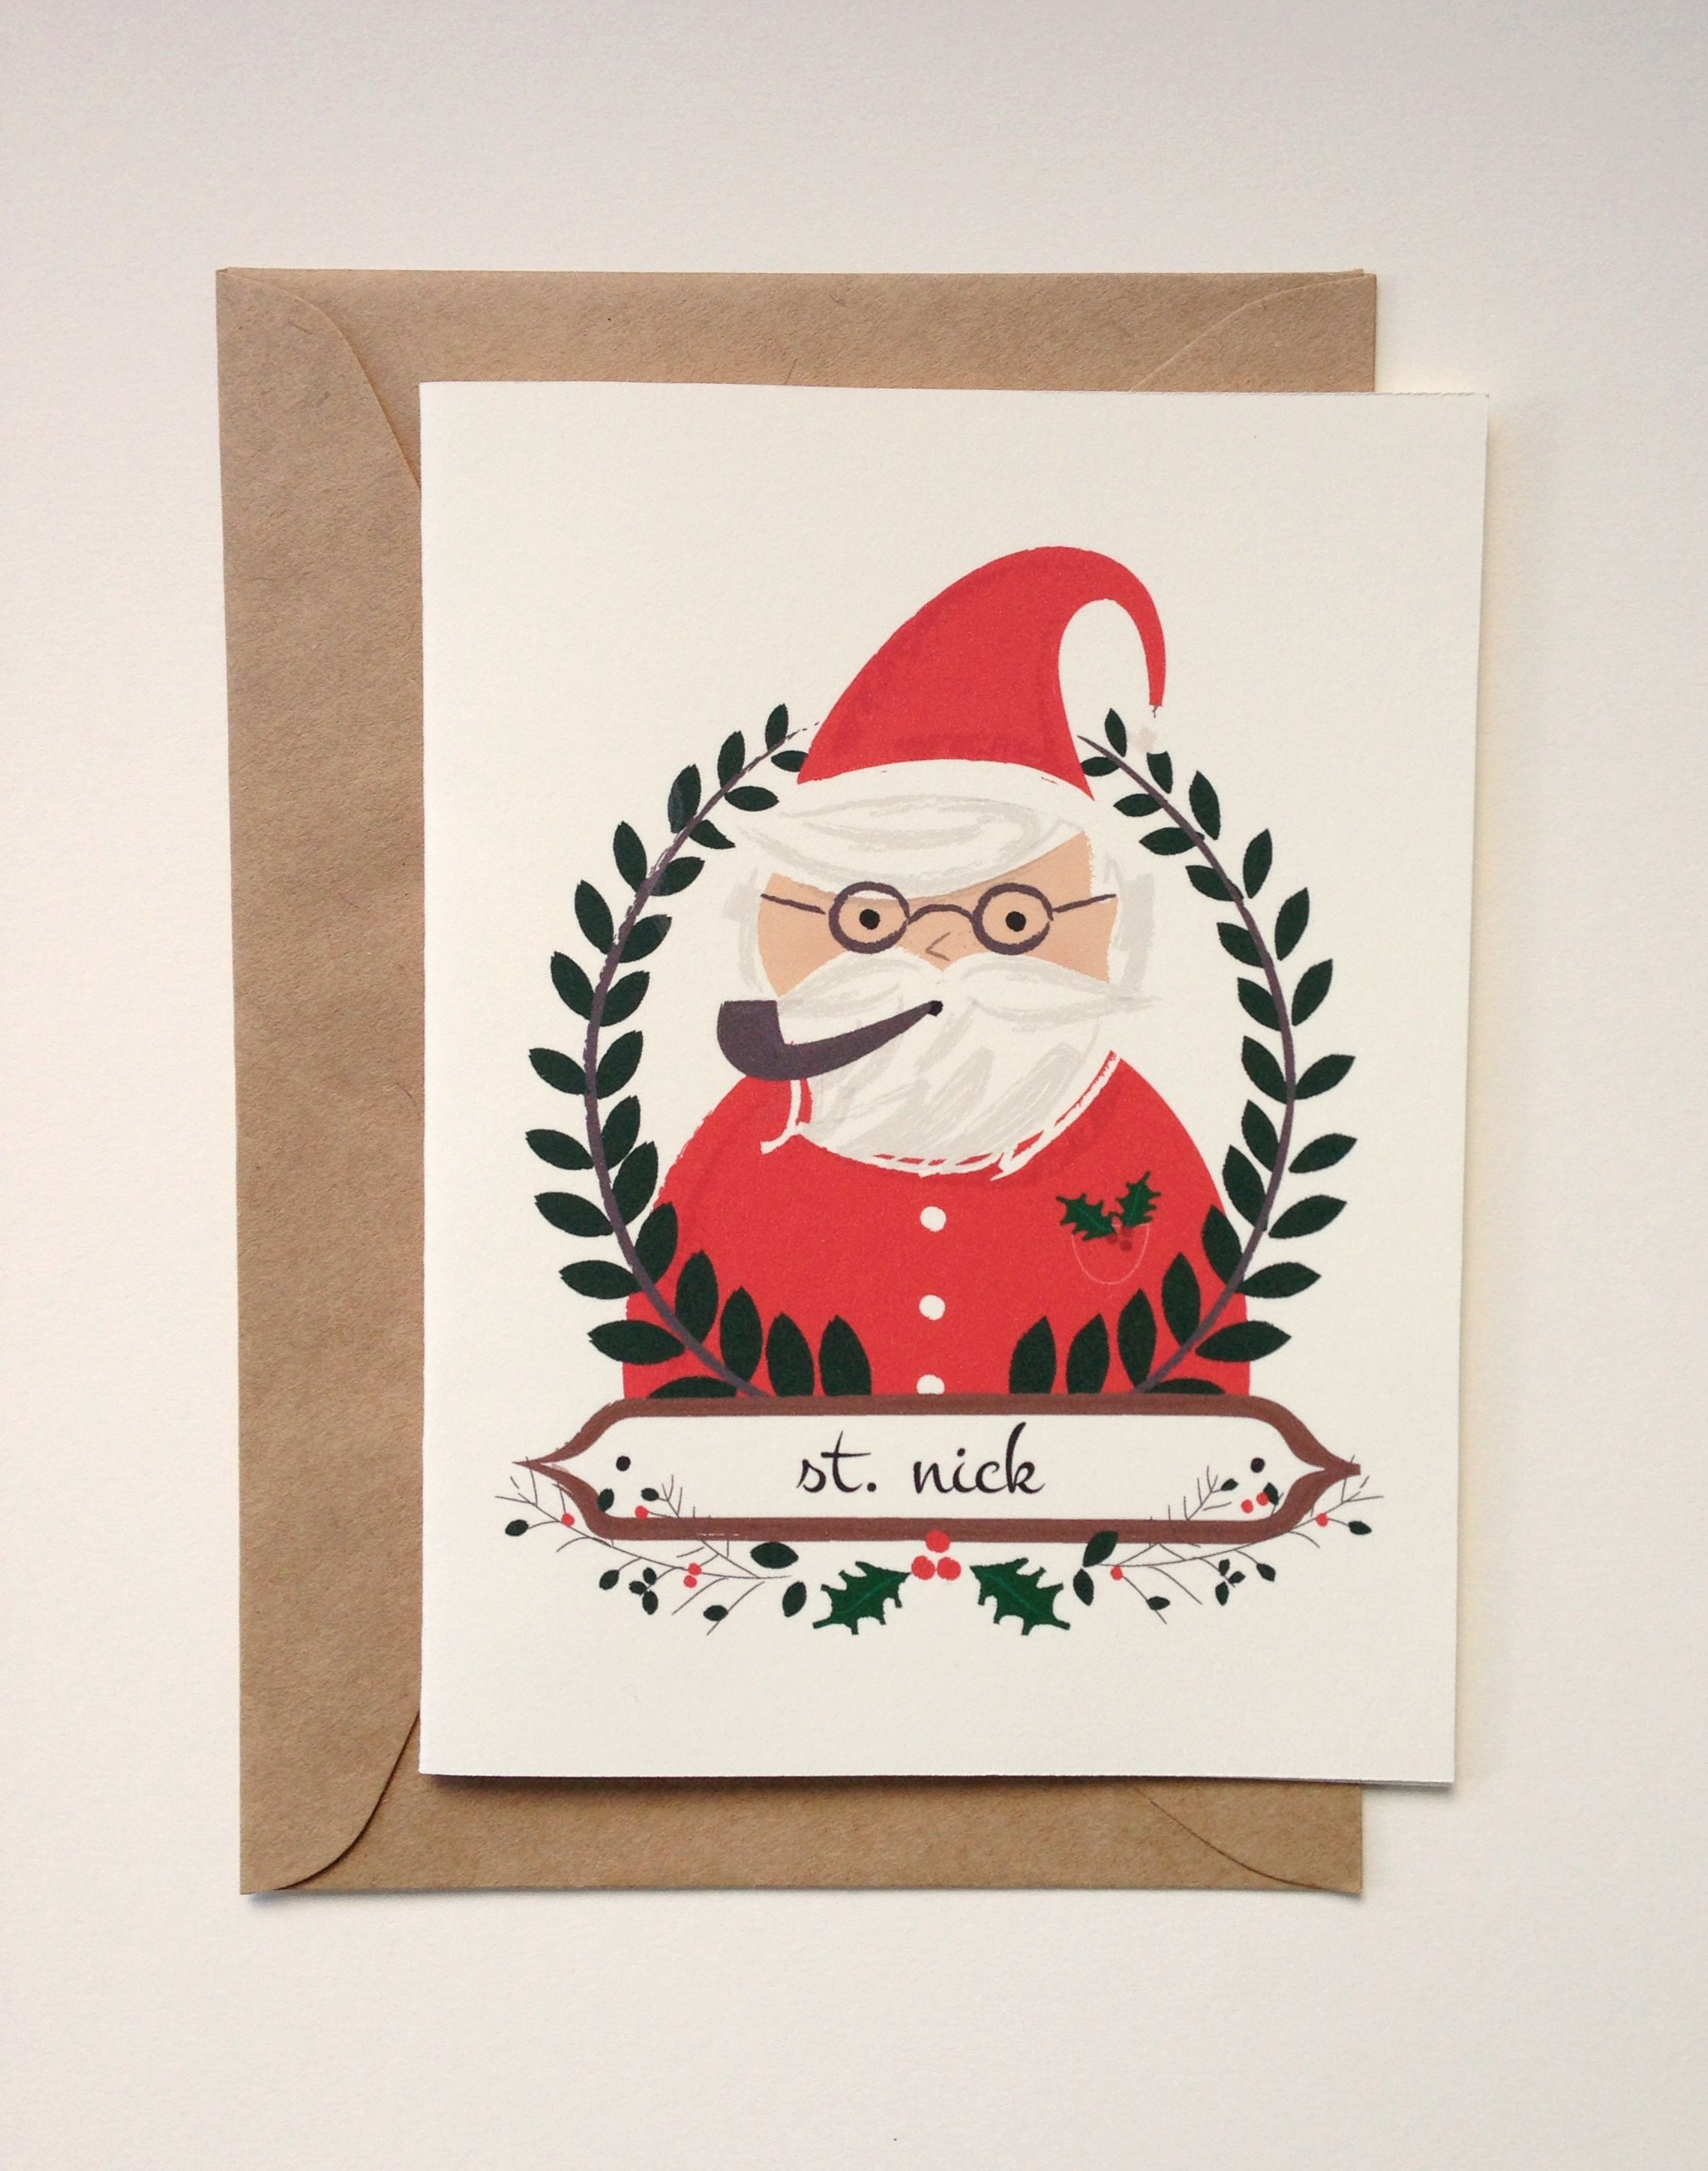 Christmas greeting card from gable paper co happy holidays christmas greeting card from gable paper co happy holidays pinterest christmas greeting cards christmas illustration and holidays kristyandbryce Choice Image